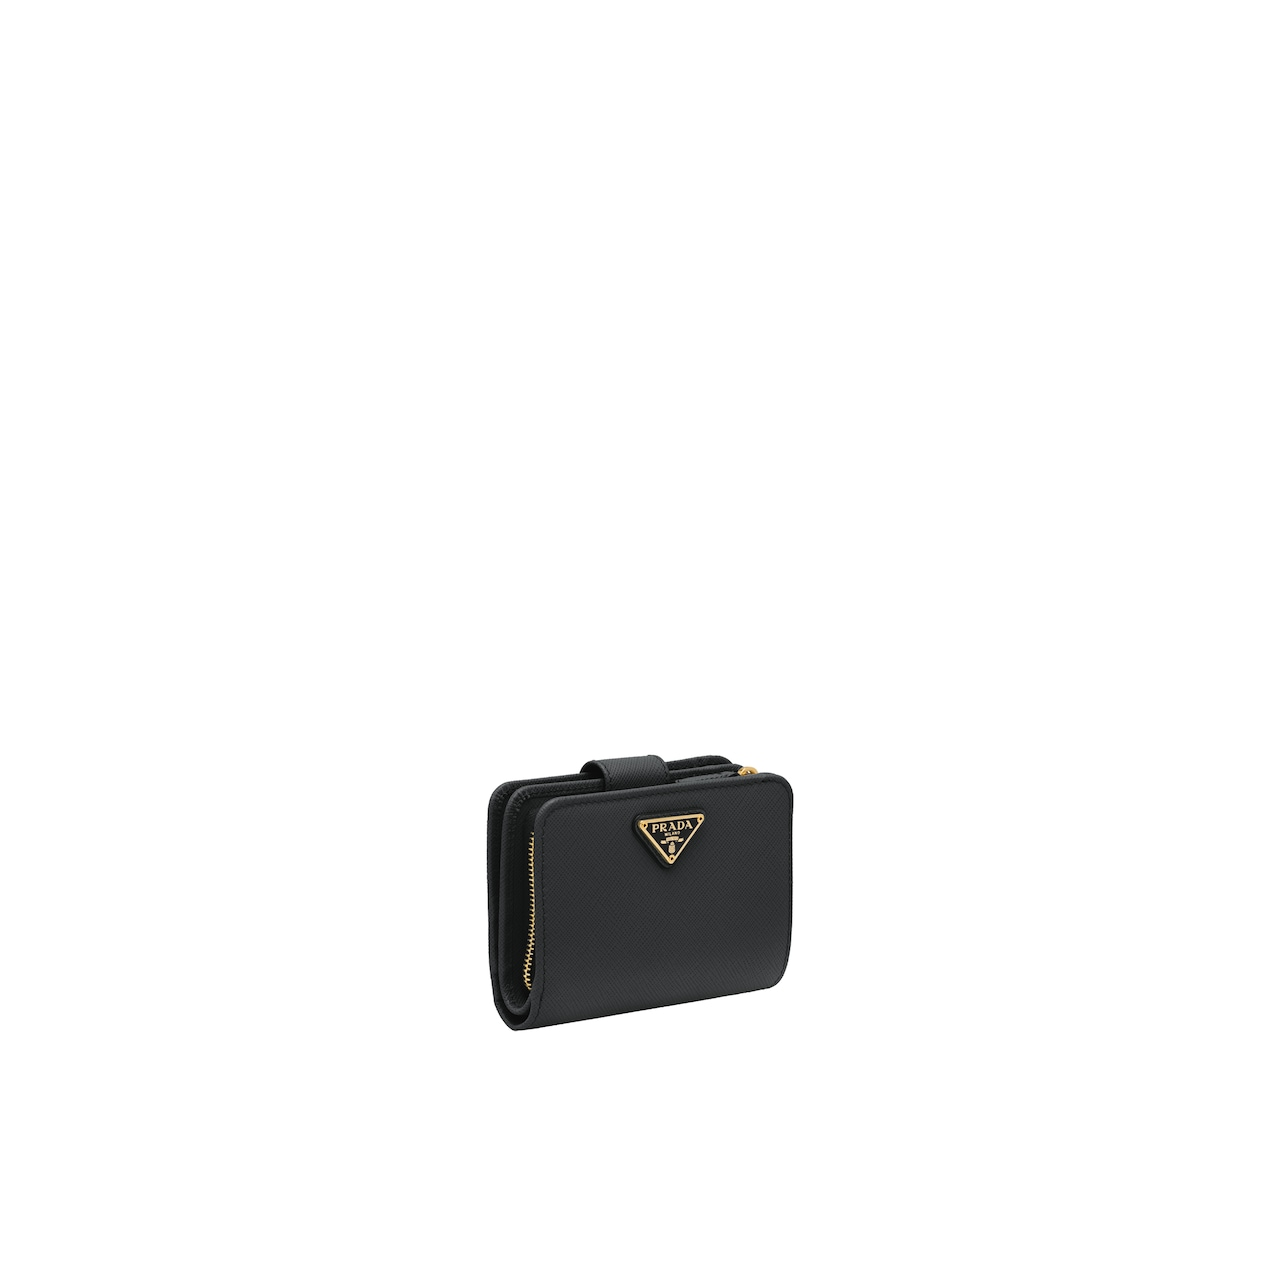 Small Saffiano leather wallet 4